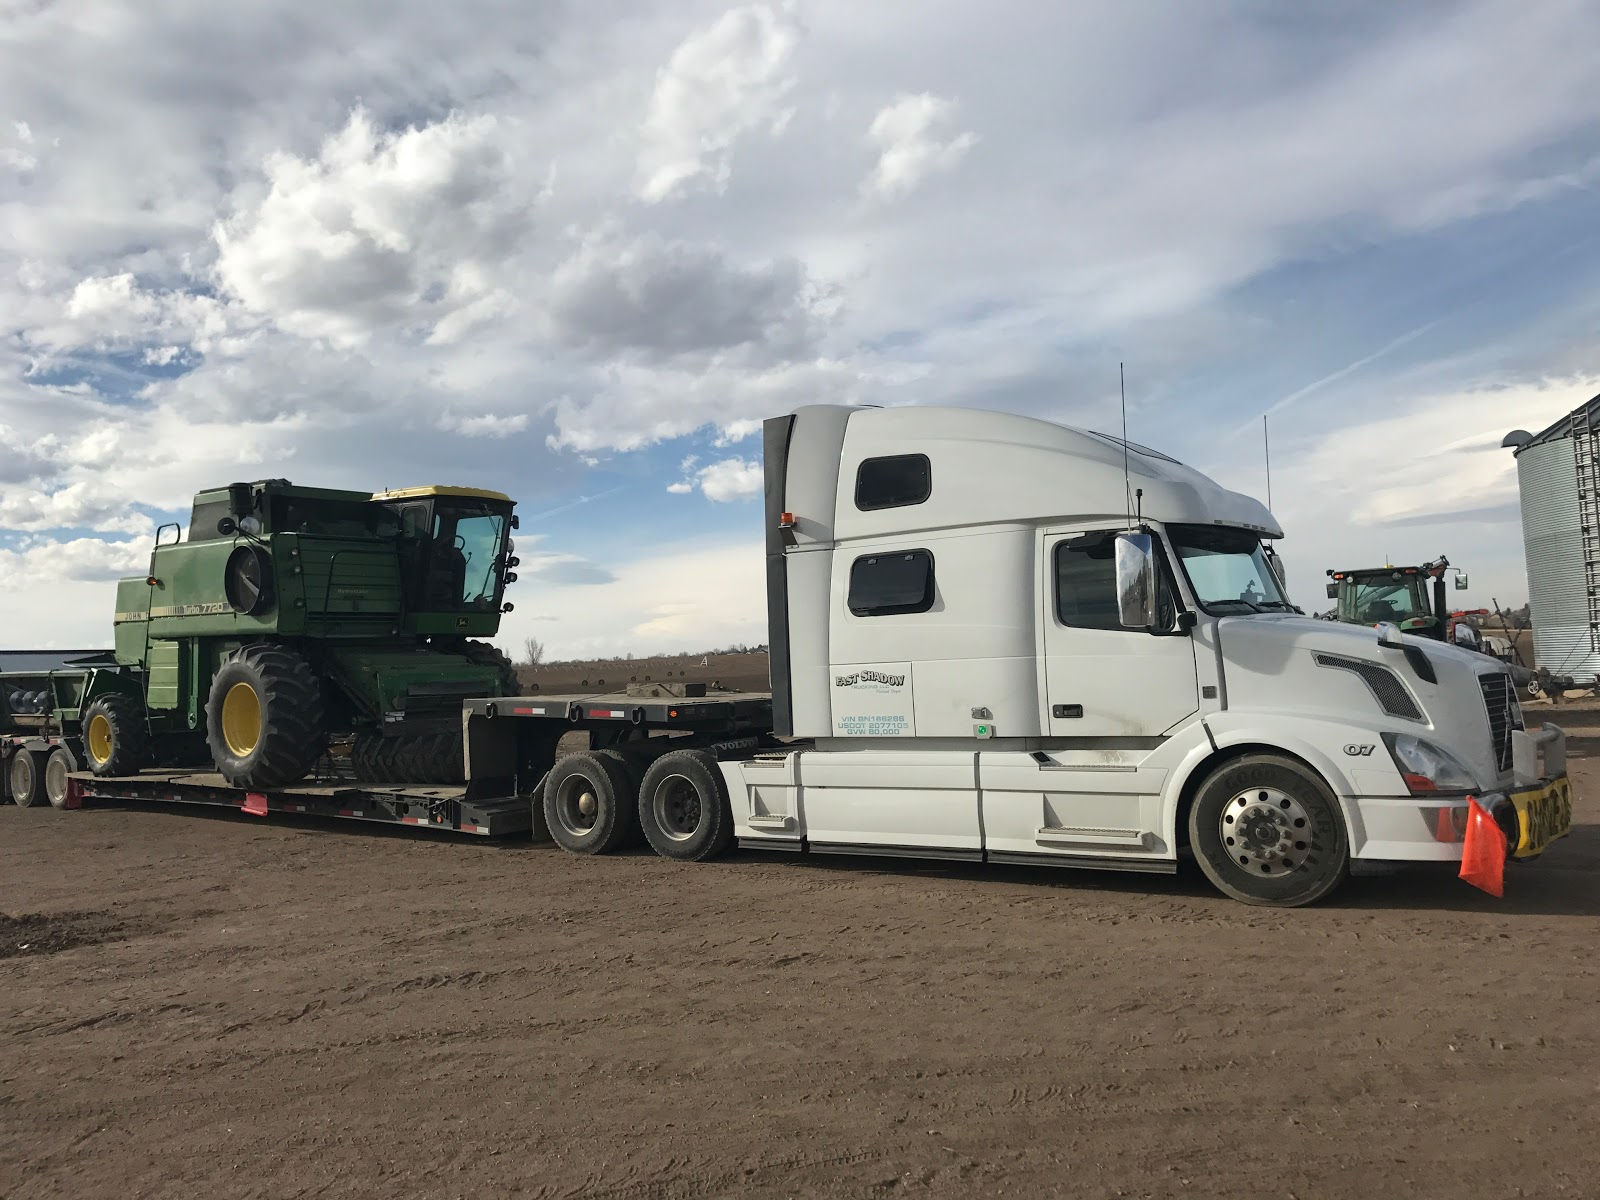 john deere 7720 being transported